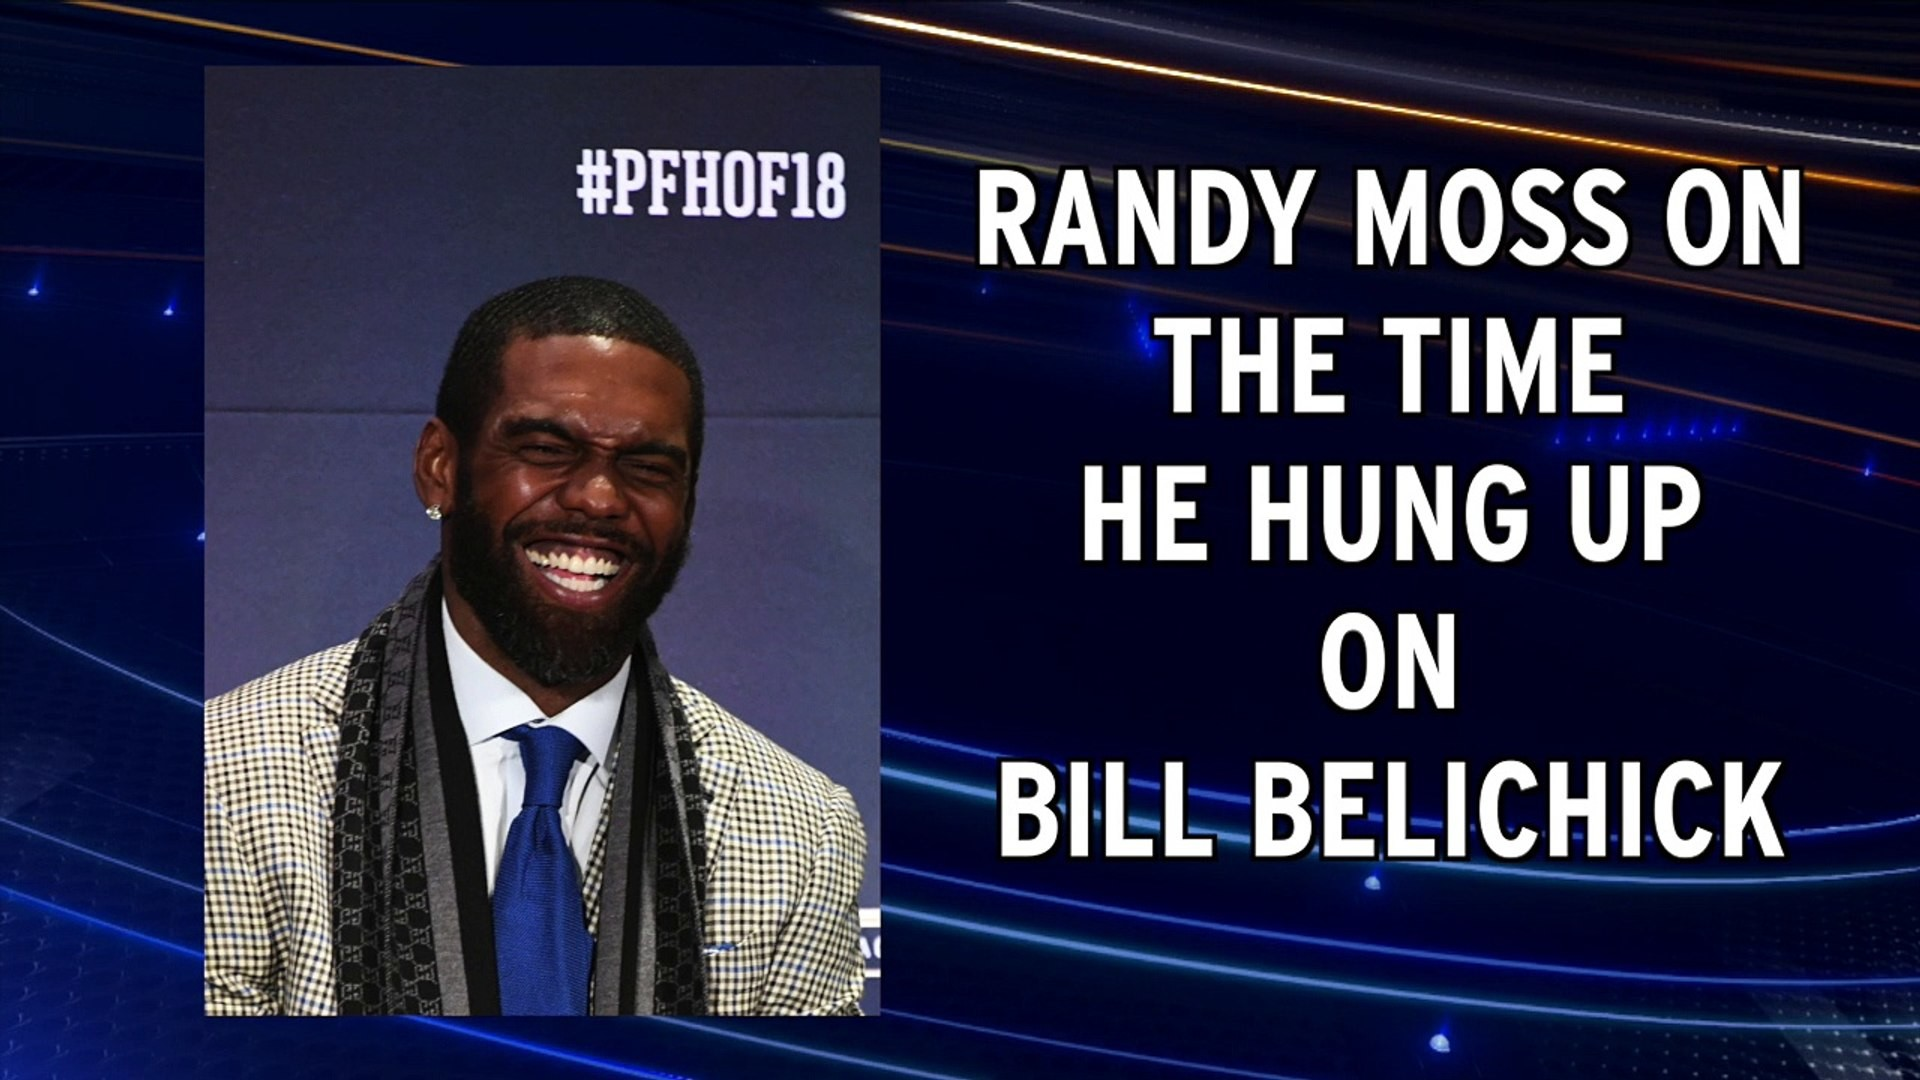 Res: 1920x1080, Randy Moss tells story about hanging up on Bill Belichick